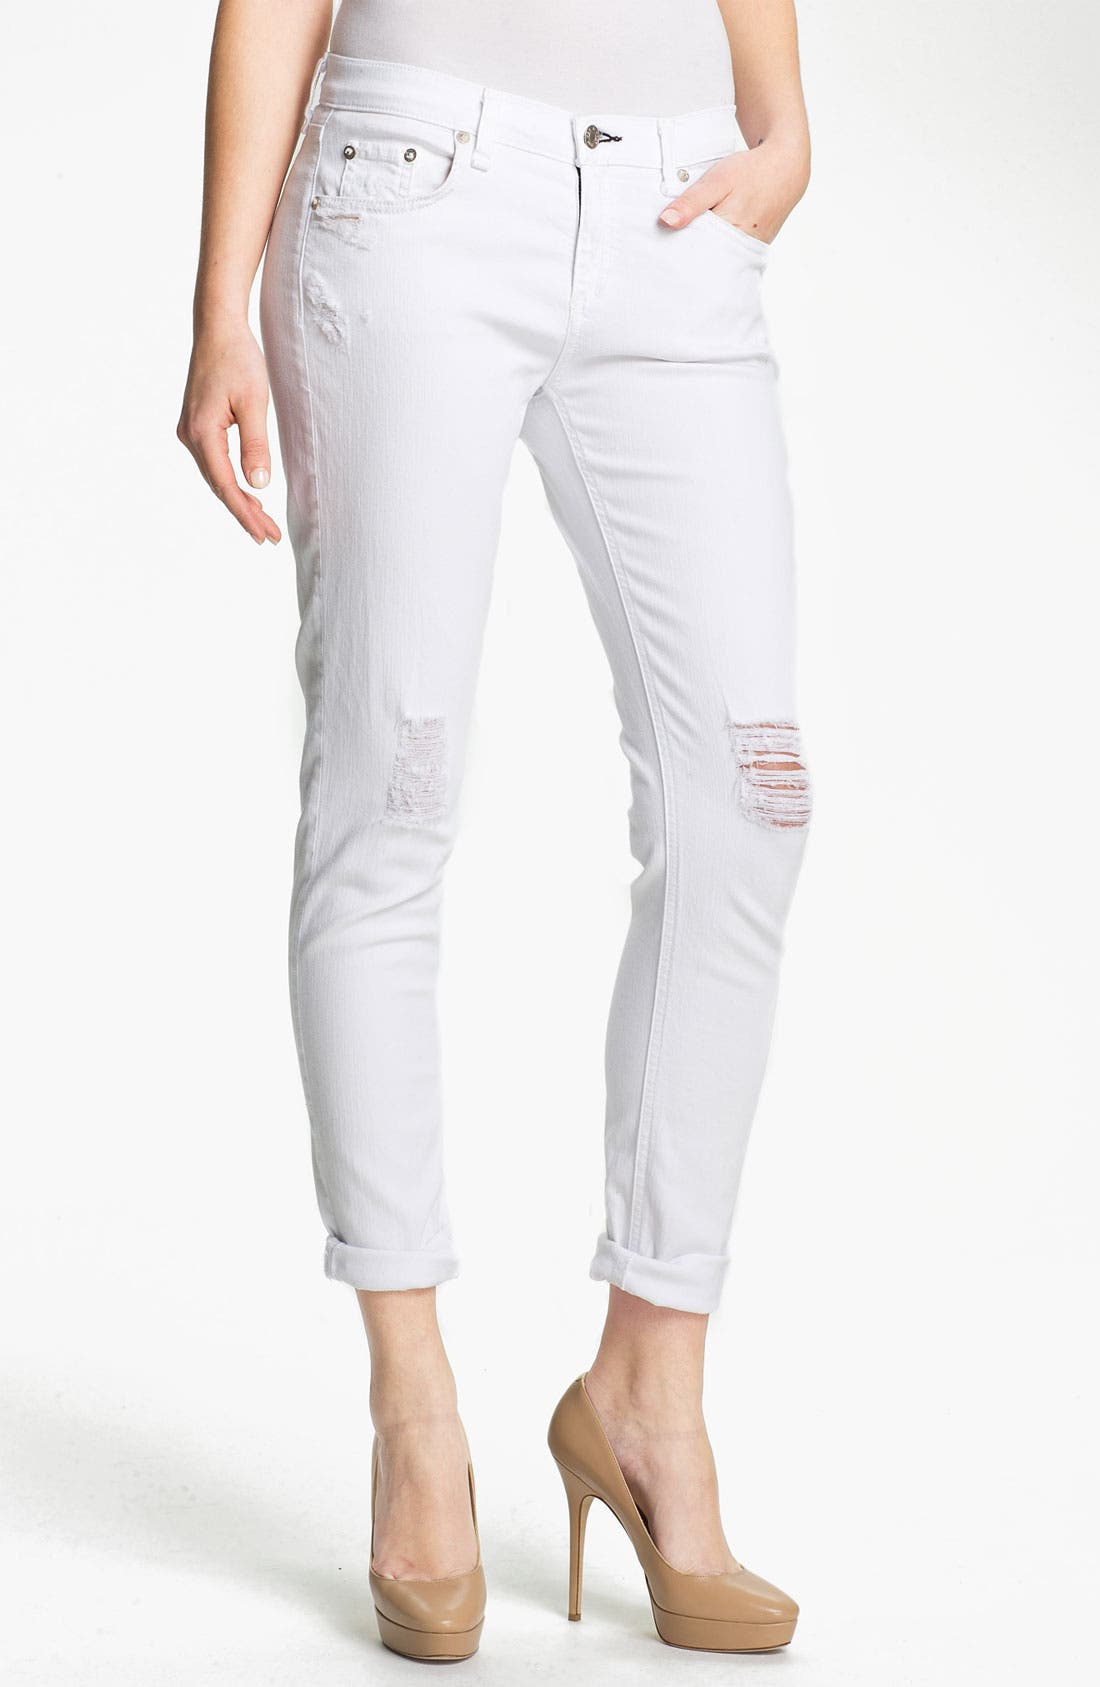 Main Image - rag & bone/JEAN 'The Dash' Slouchy Skinny Jeans